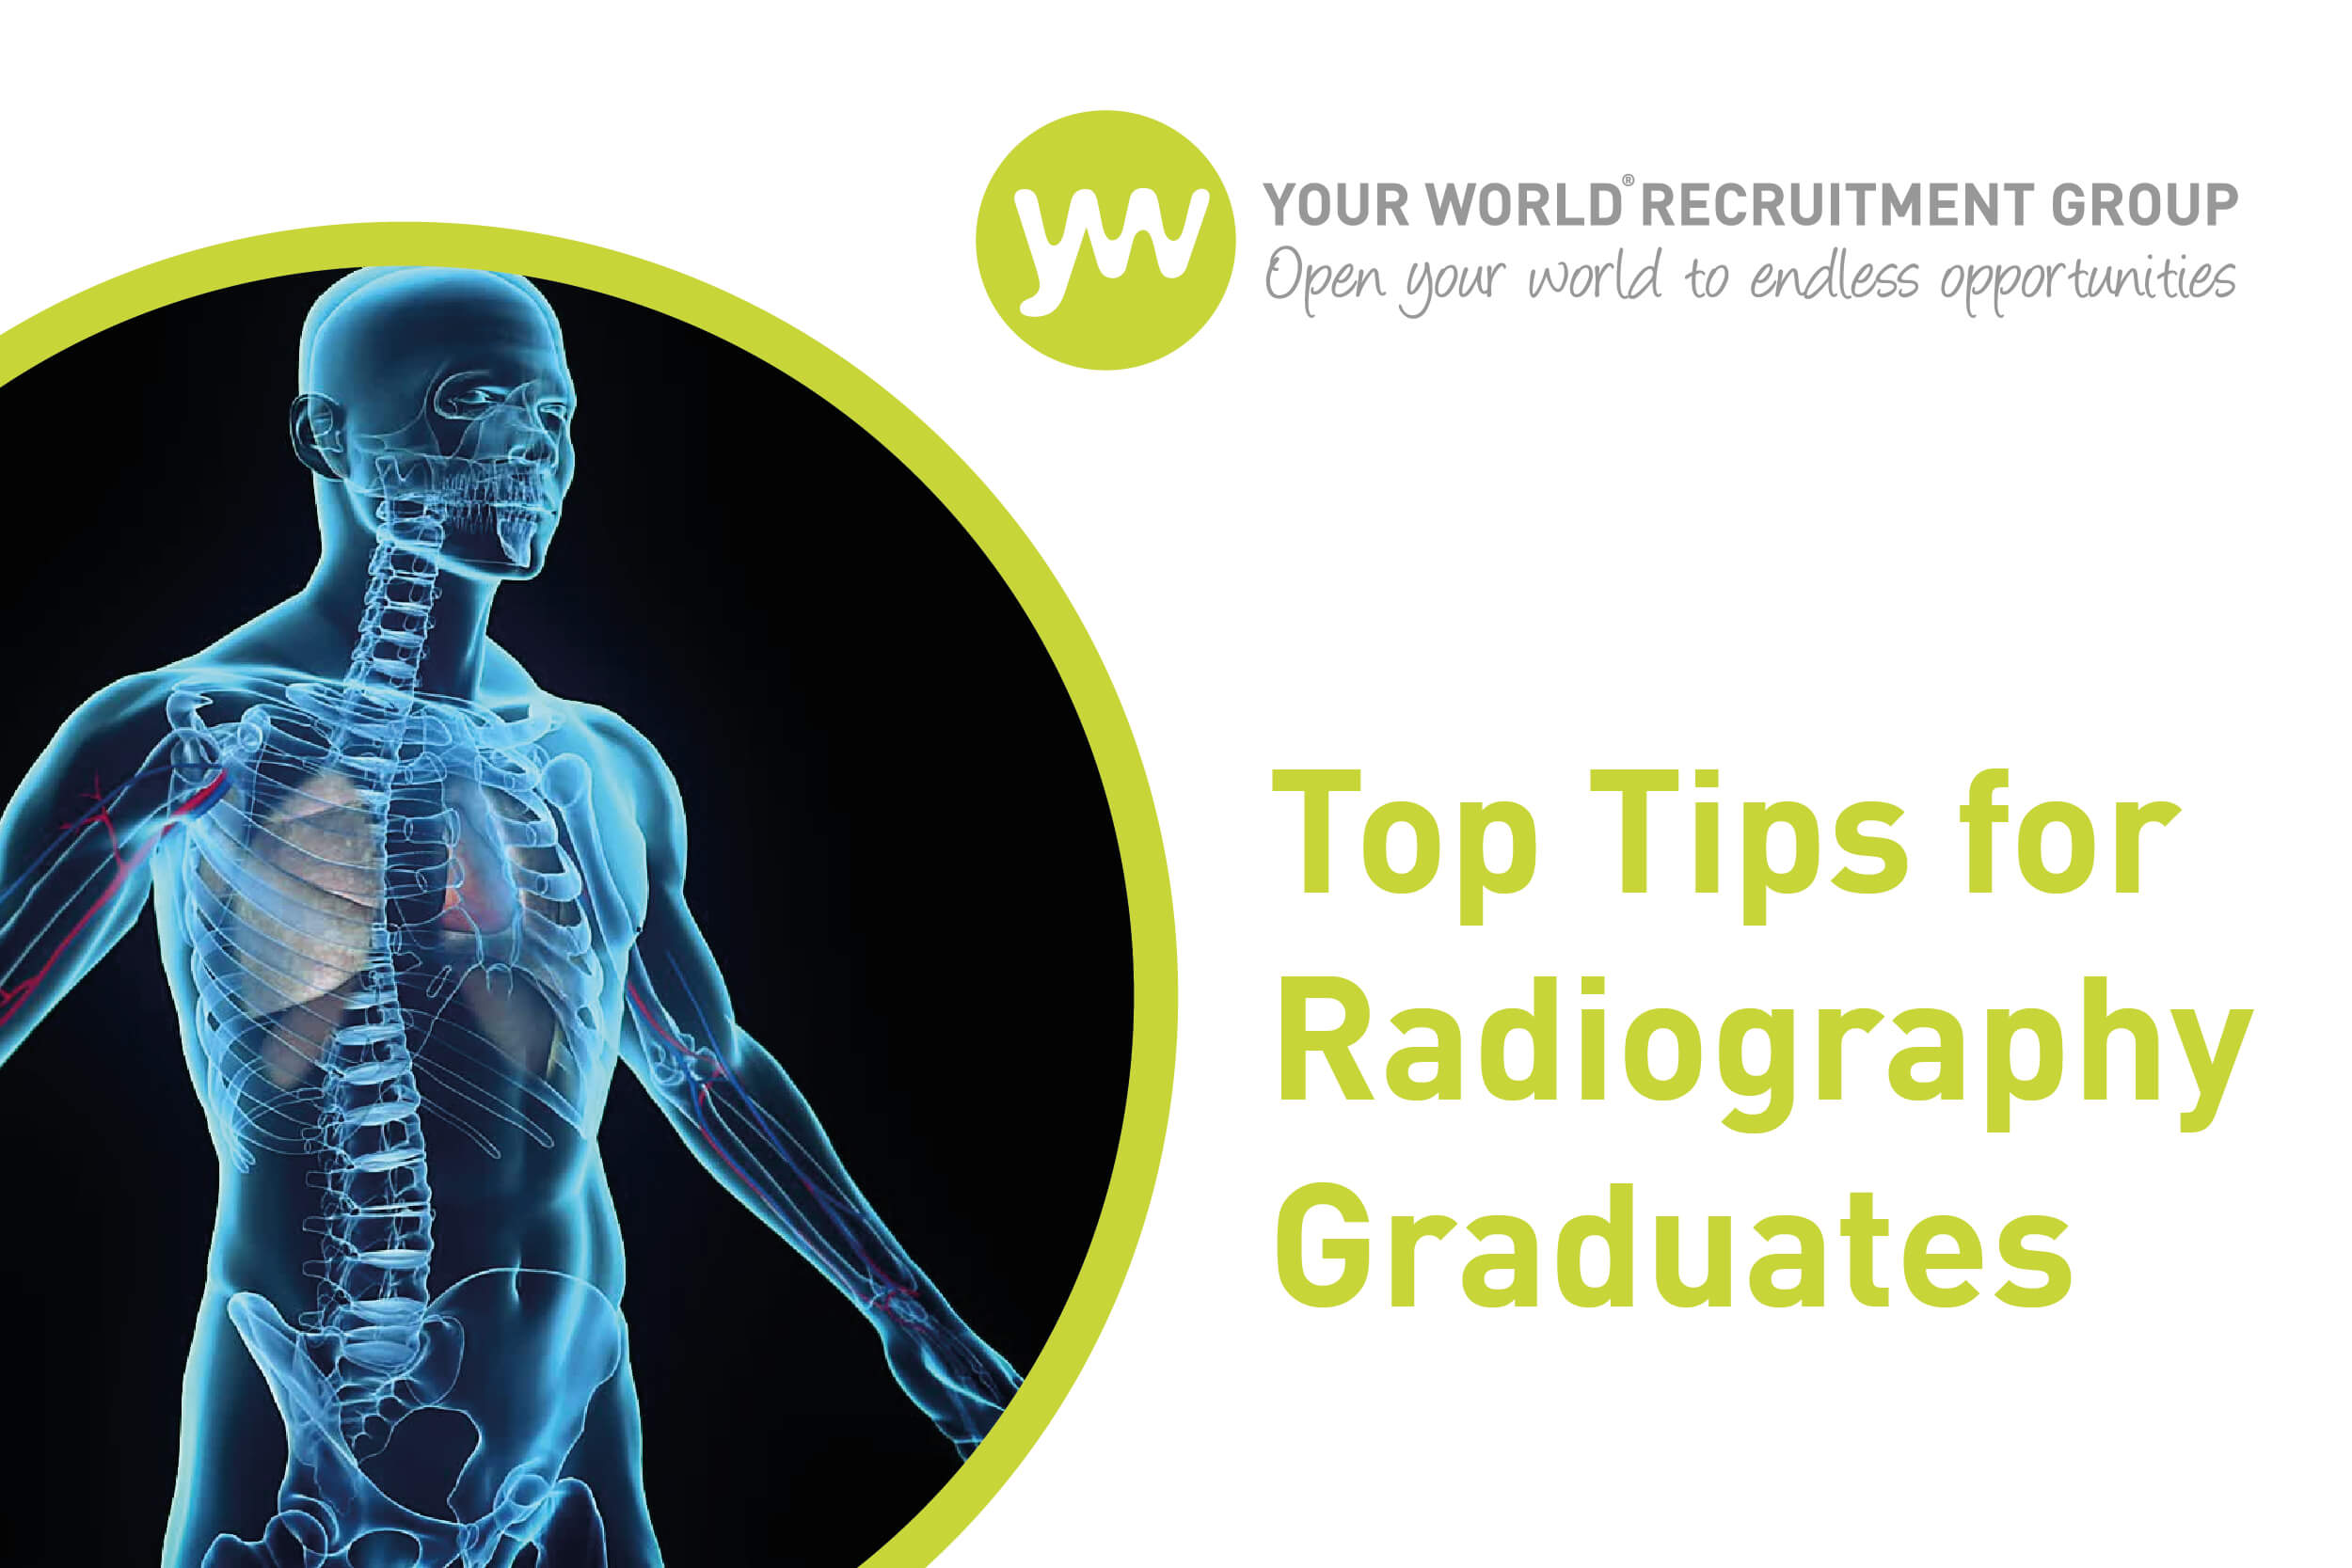 Top Tips for Radiography Graduates